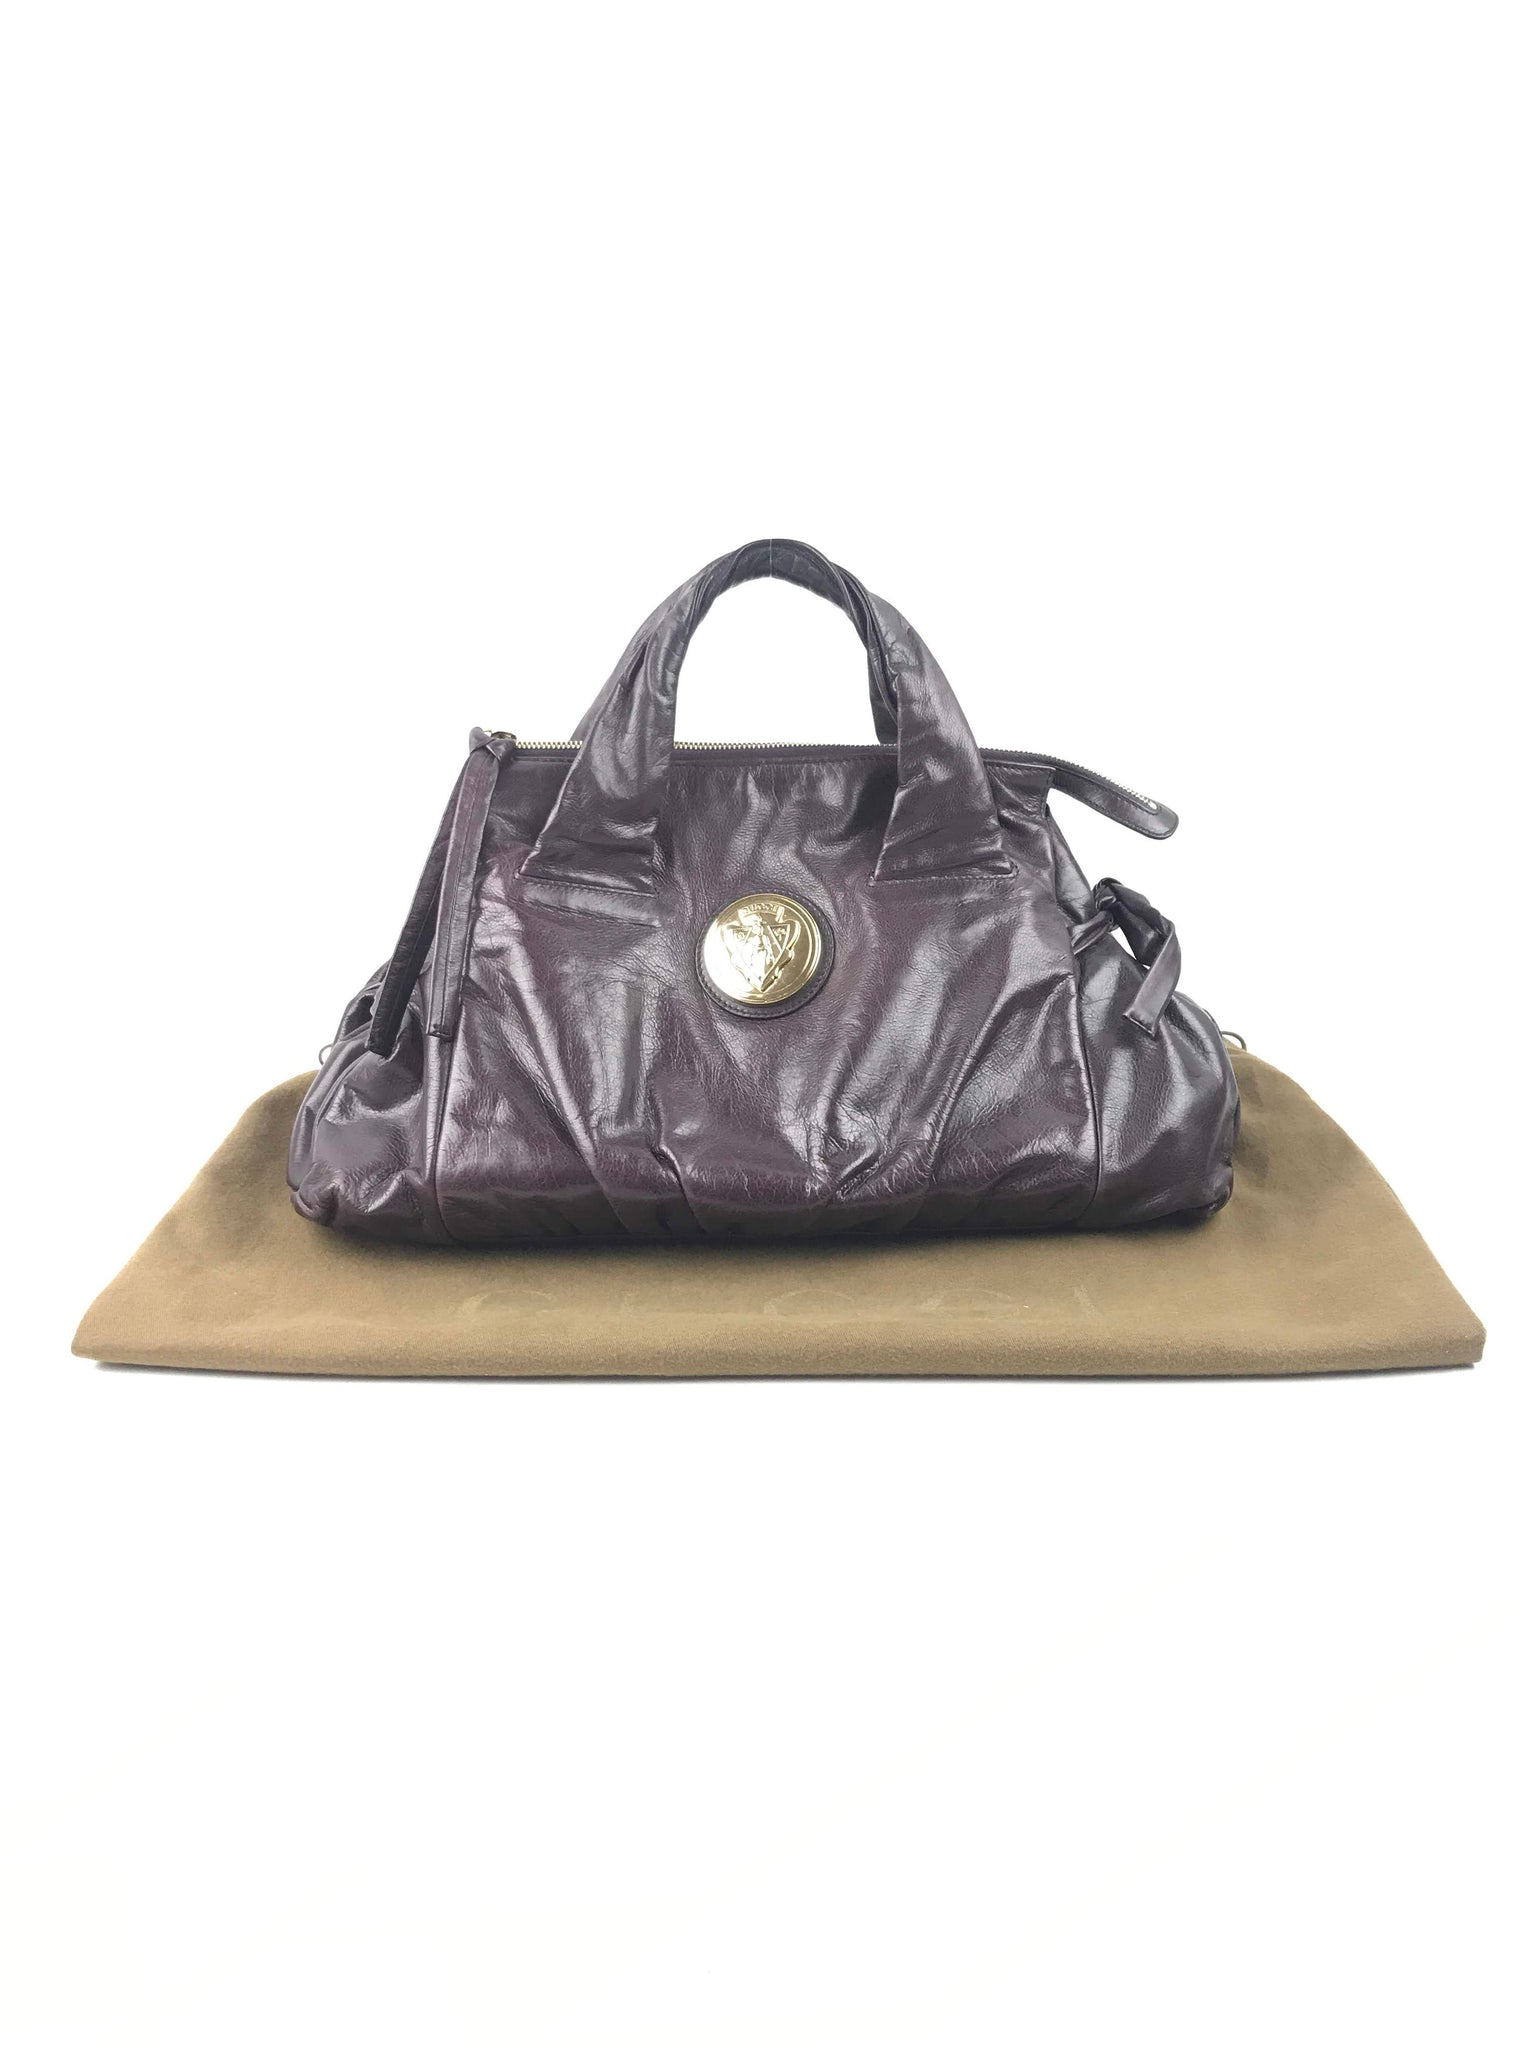 GUCCI Purple Leather Crest Hysteria Tote